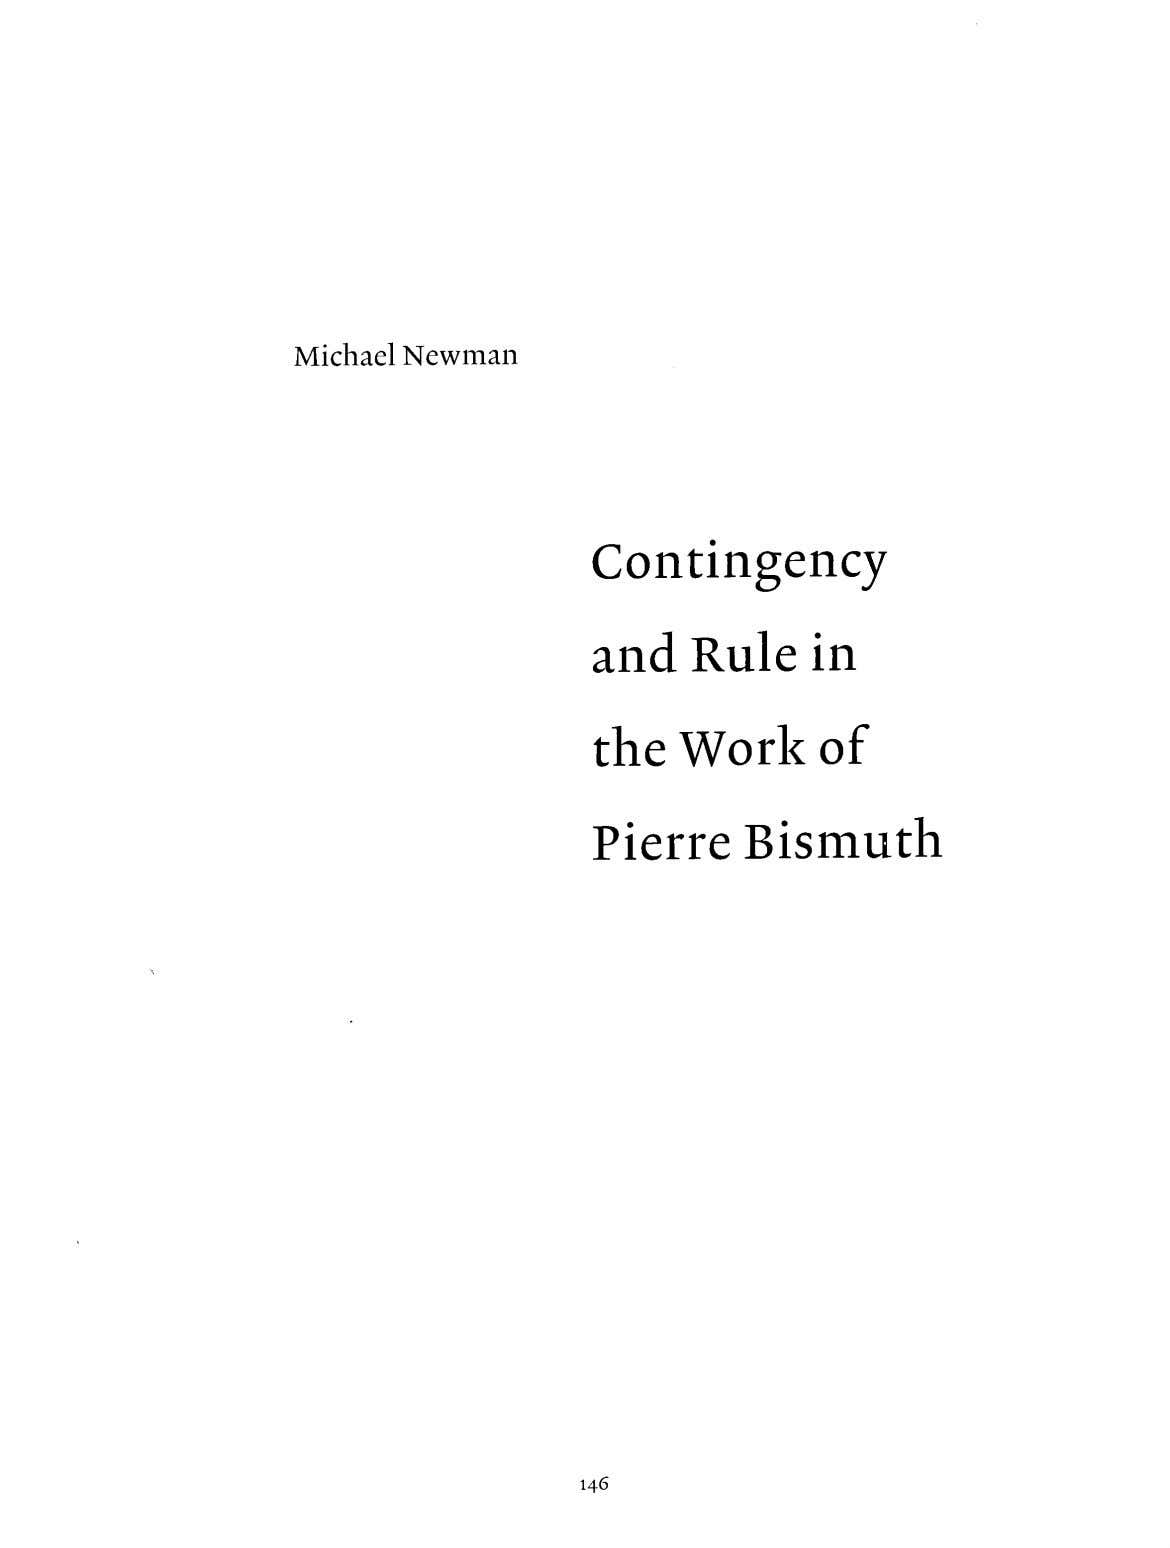 Michael Newman Contingency and Rule in the Work of Pierre Bismuth